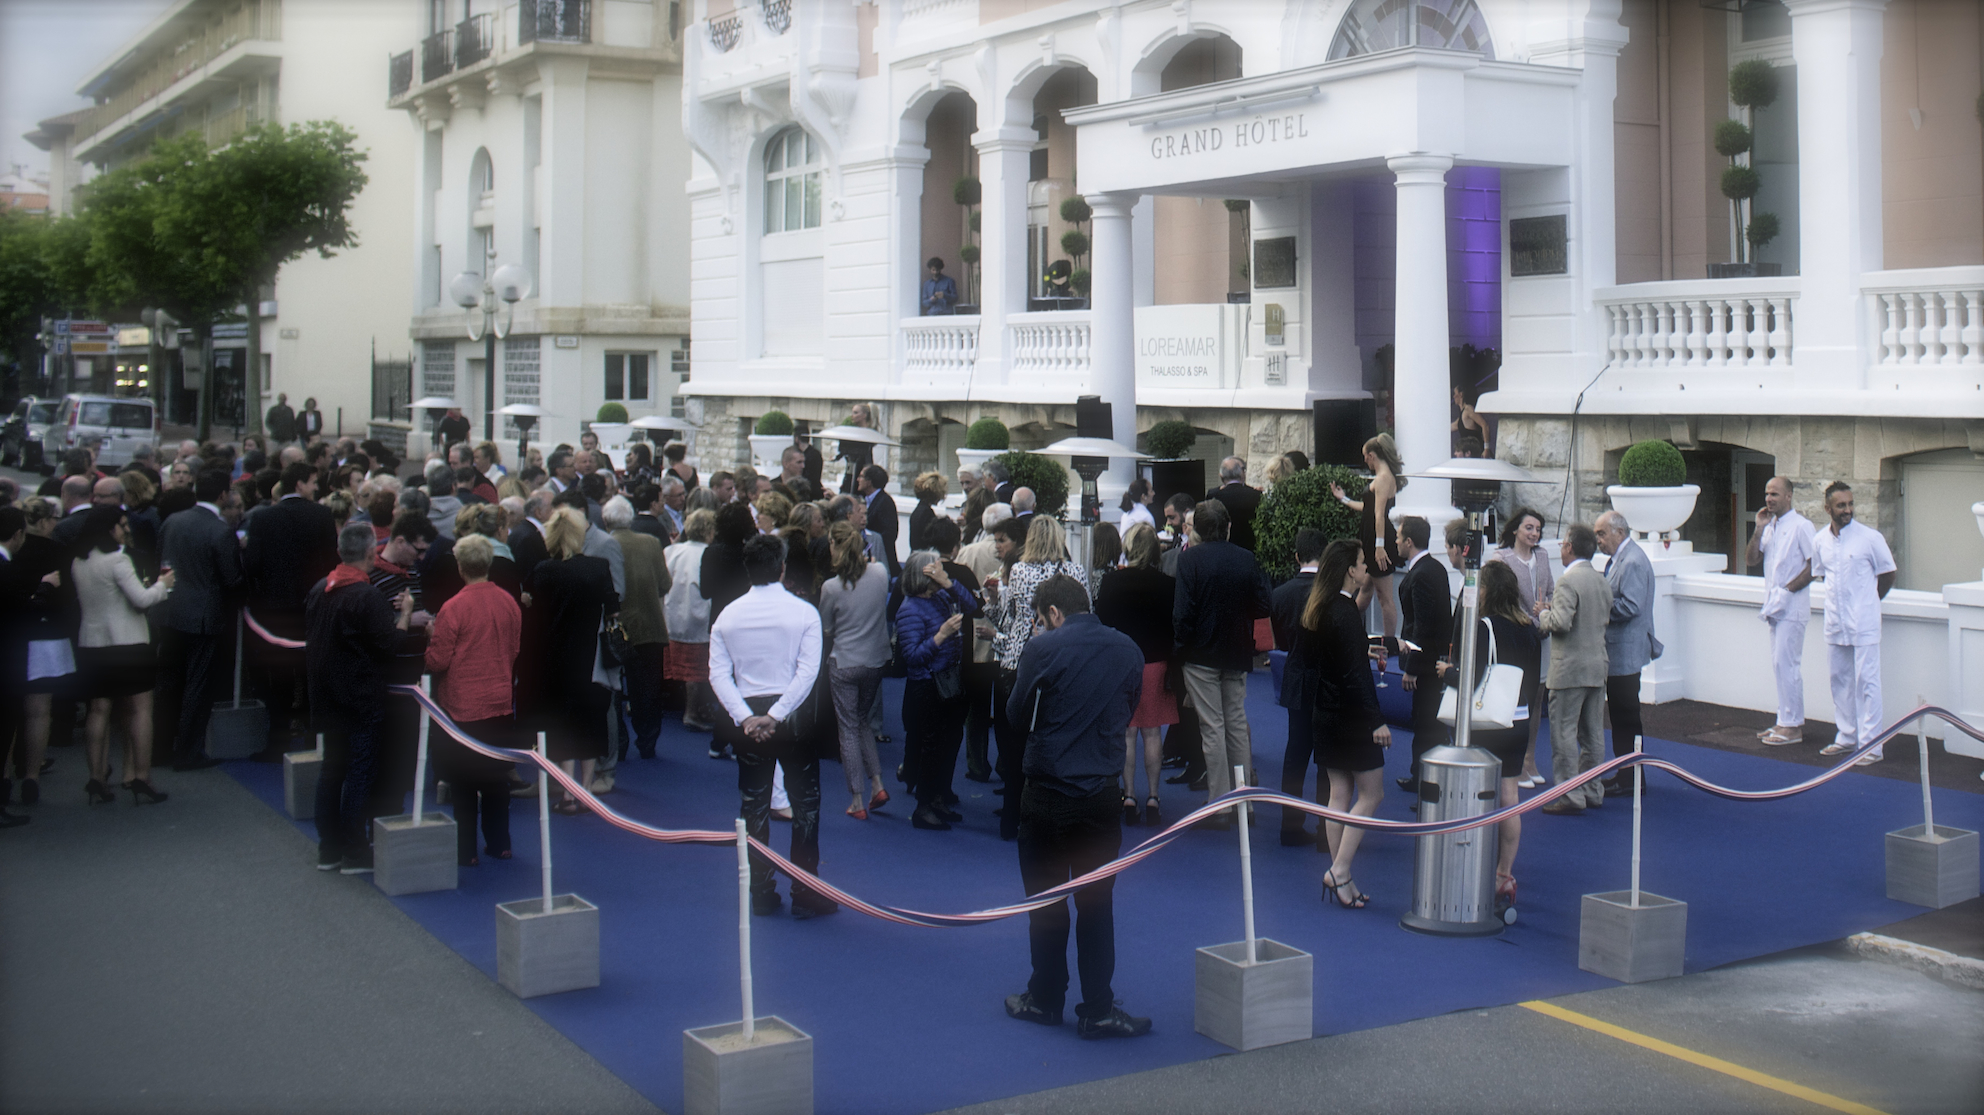 INAUGURATION-GRAND-HOTEL-saint-jean-de-luz-agence-evenementielle-pays-basque-le-cercle-evenements- 115